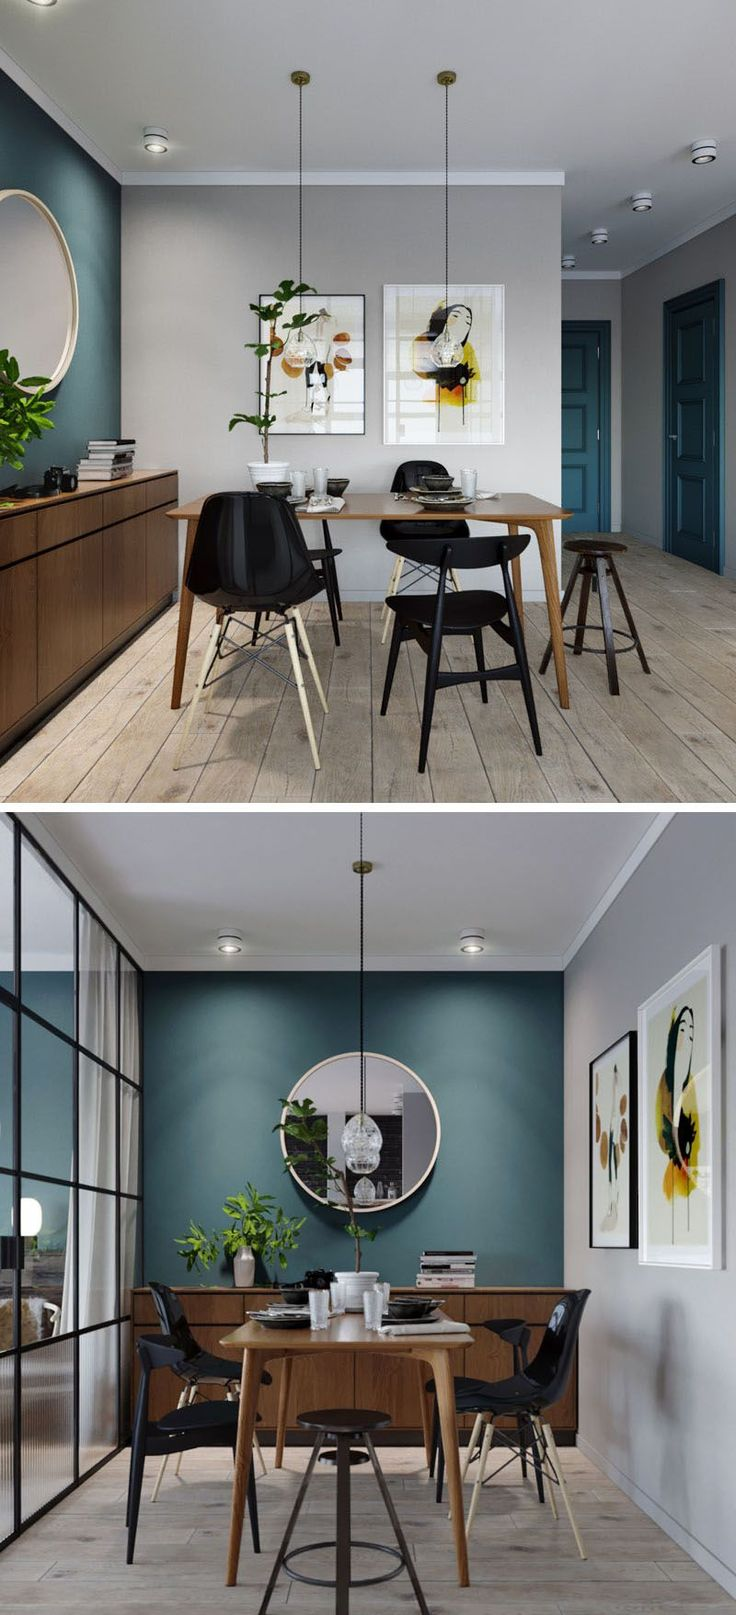 In this small apartment, the dining area has a deep teal blue accent wall that ties in with the front door and storage closet, while the wood furniture adds a natural touch and the black chairs match the black framed glass wall of the bedroom. #salas